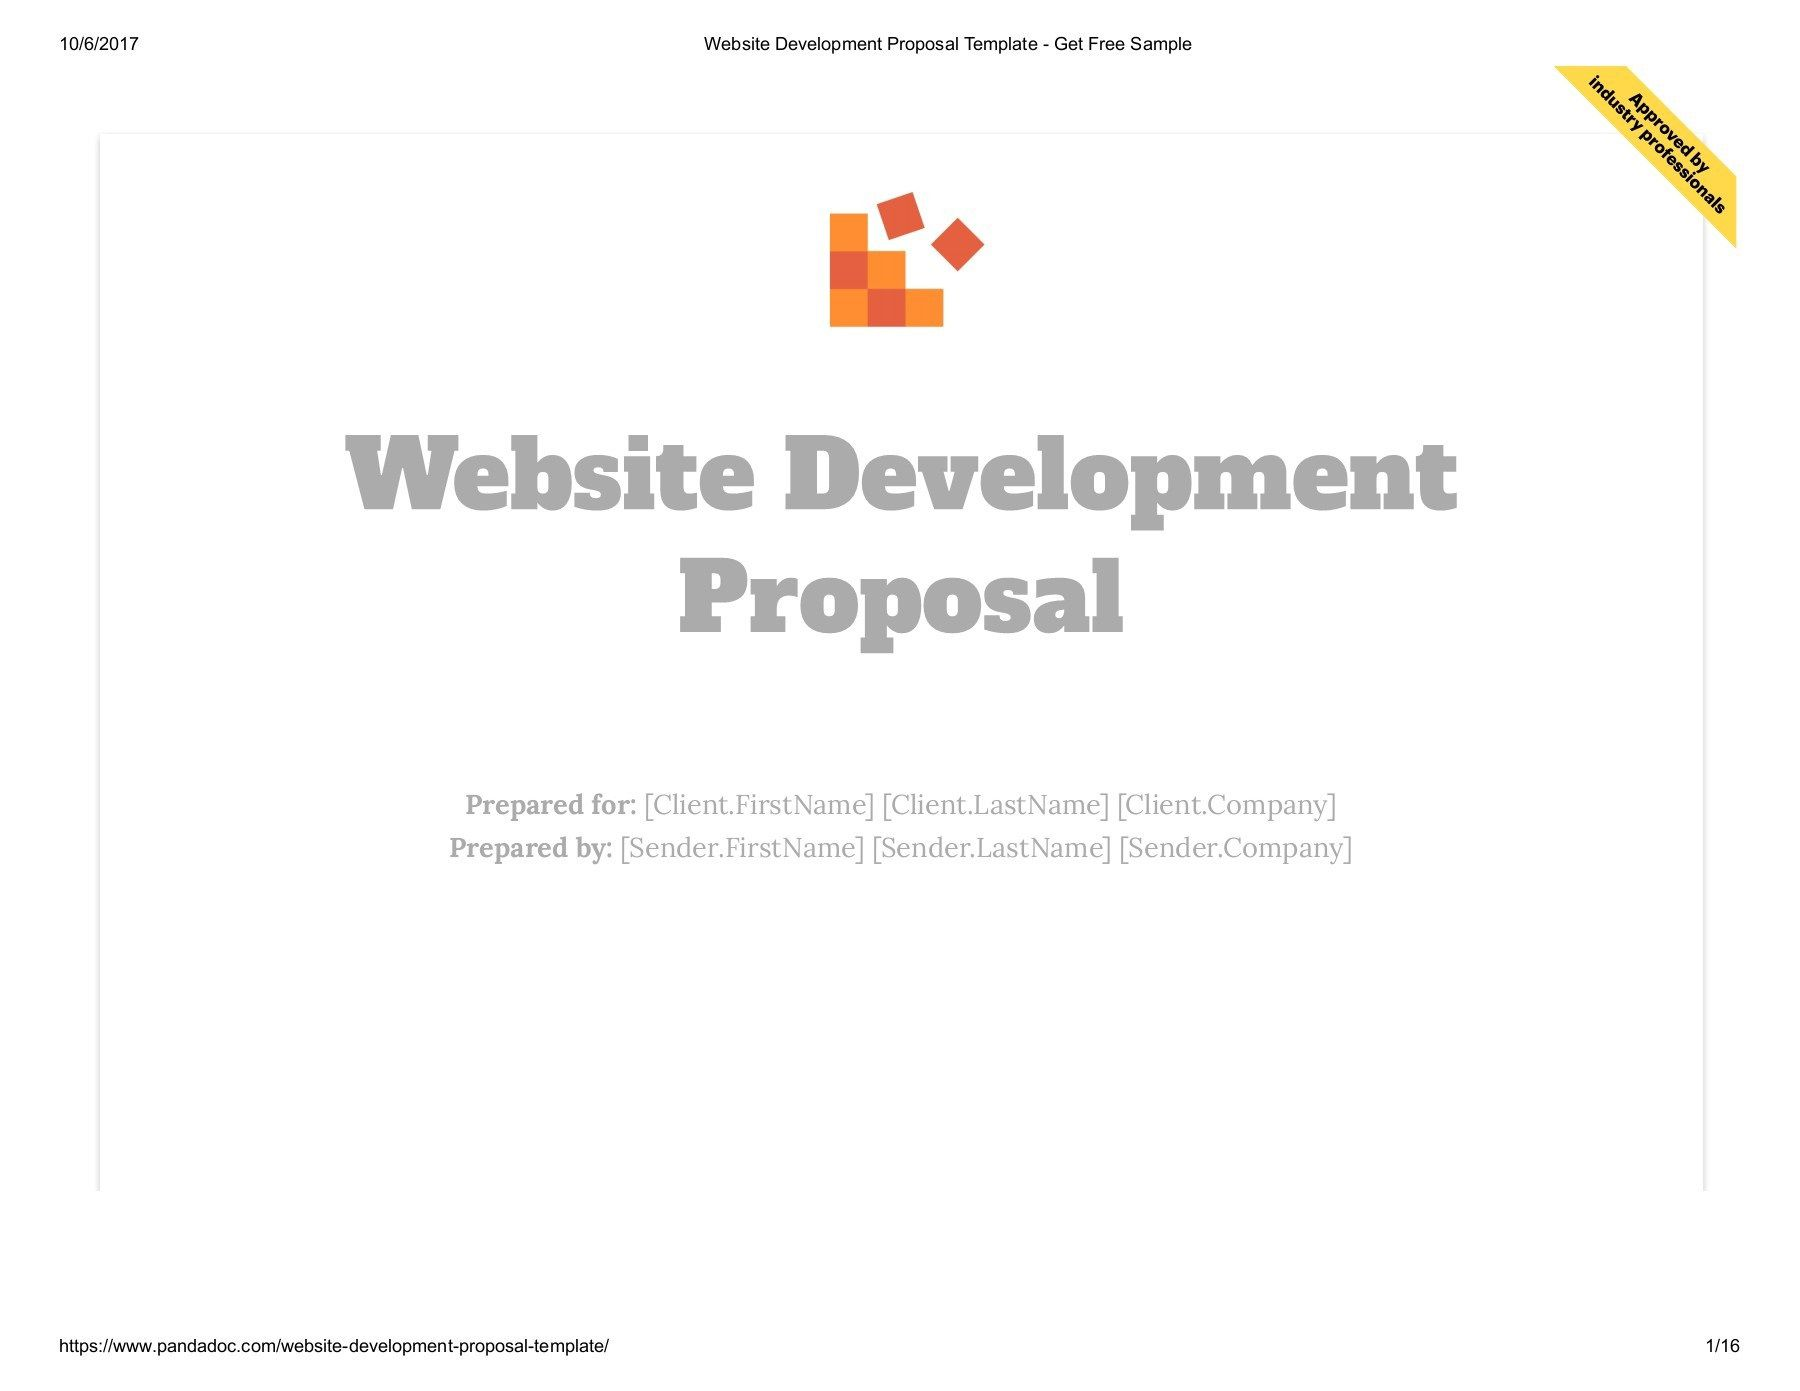 000 Top Website Development Proposal Template Inspiration  Web Free Document PortalFull